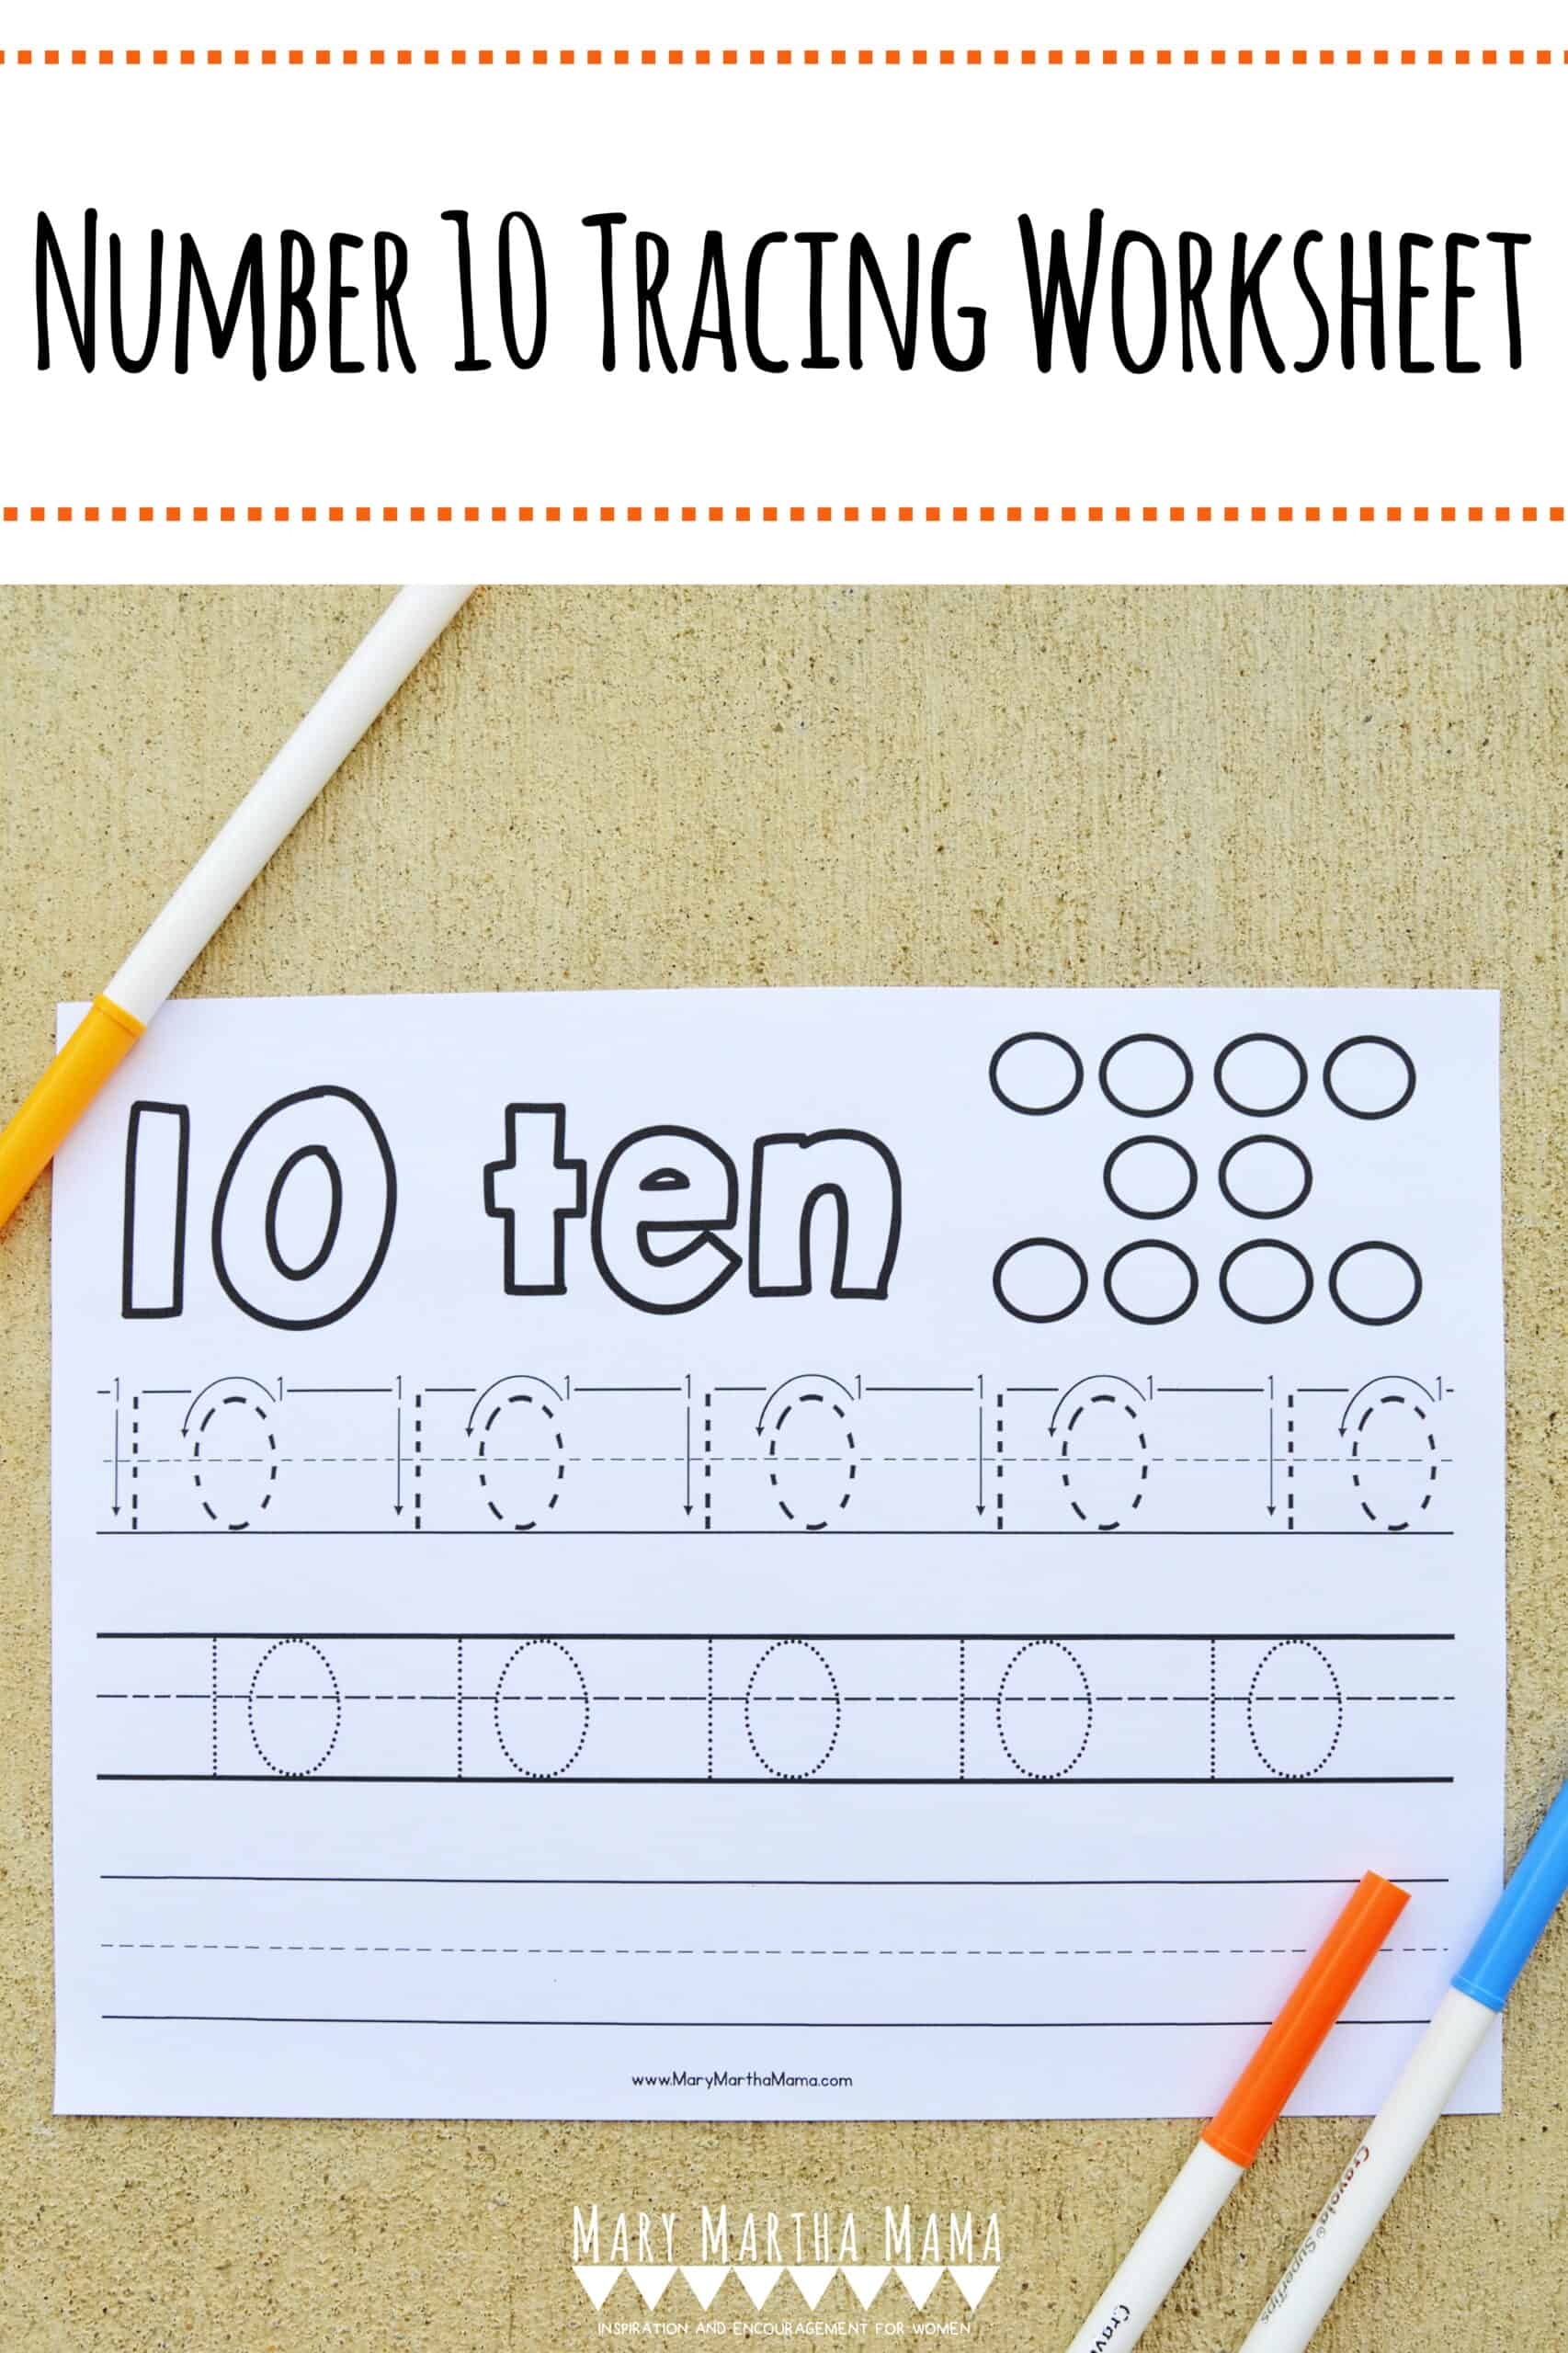 Use this free printable Number 10 Tracing Worksheet to help your kiddo learn how to write number 10.  Features tracing with and without arrows to guide.